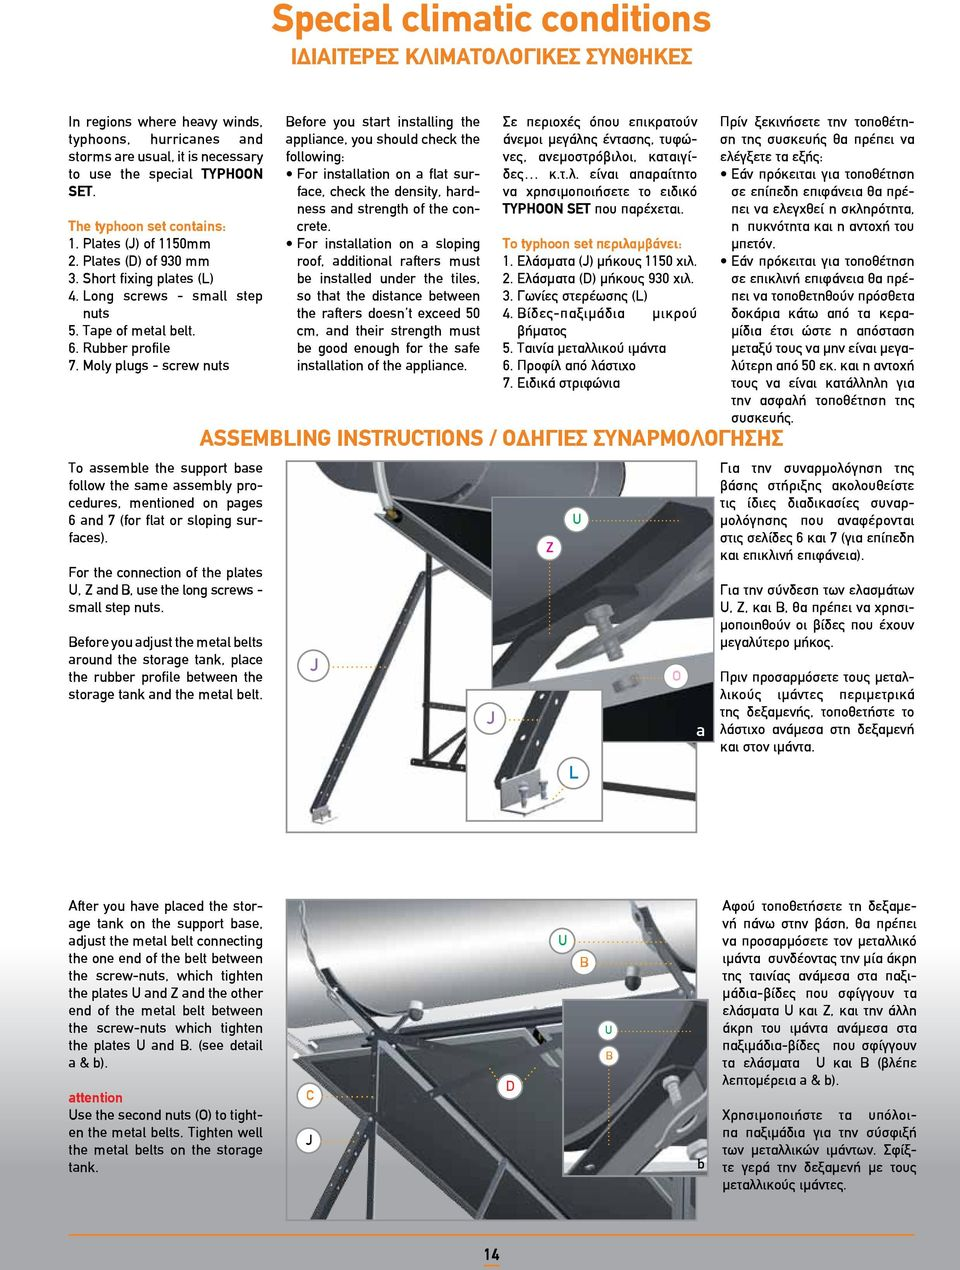 Moly plugs - screw nuts To assemble the support base follow the same assembly procedures, mentioned on pages 6 and 7 (for flat or sloping surfaces).